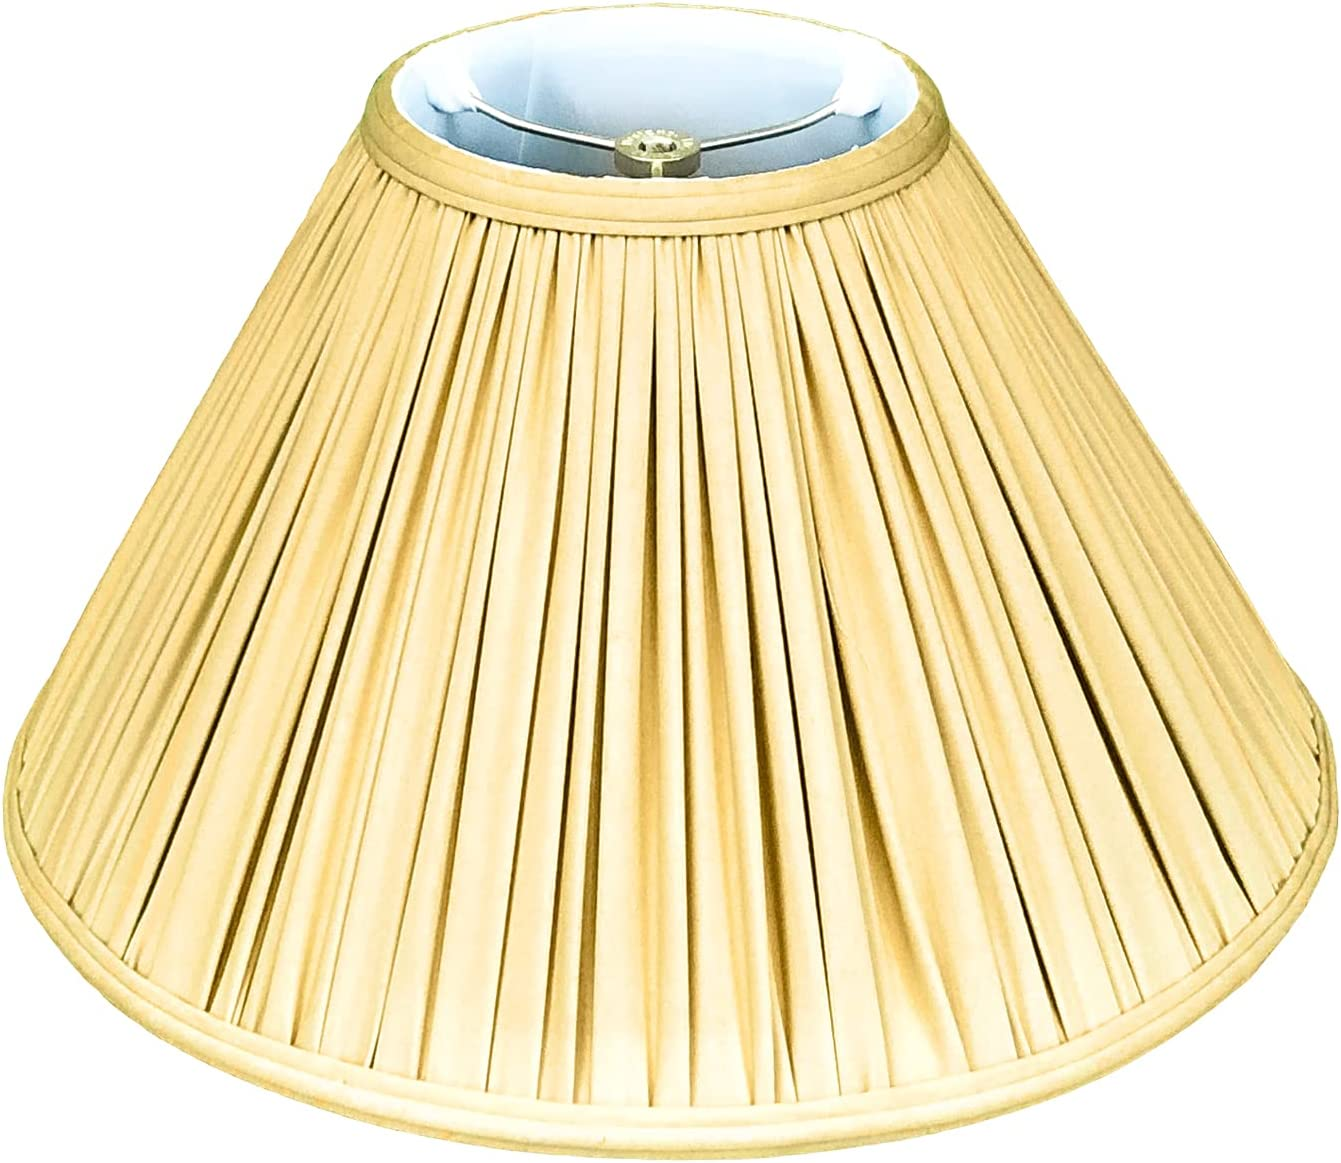 A surprise price is realized Royal Designs Coolie Empire Gather Pleat Lamp Basic Today's only Shade Antiq